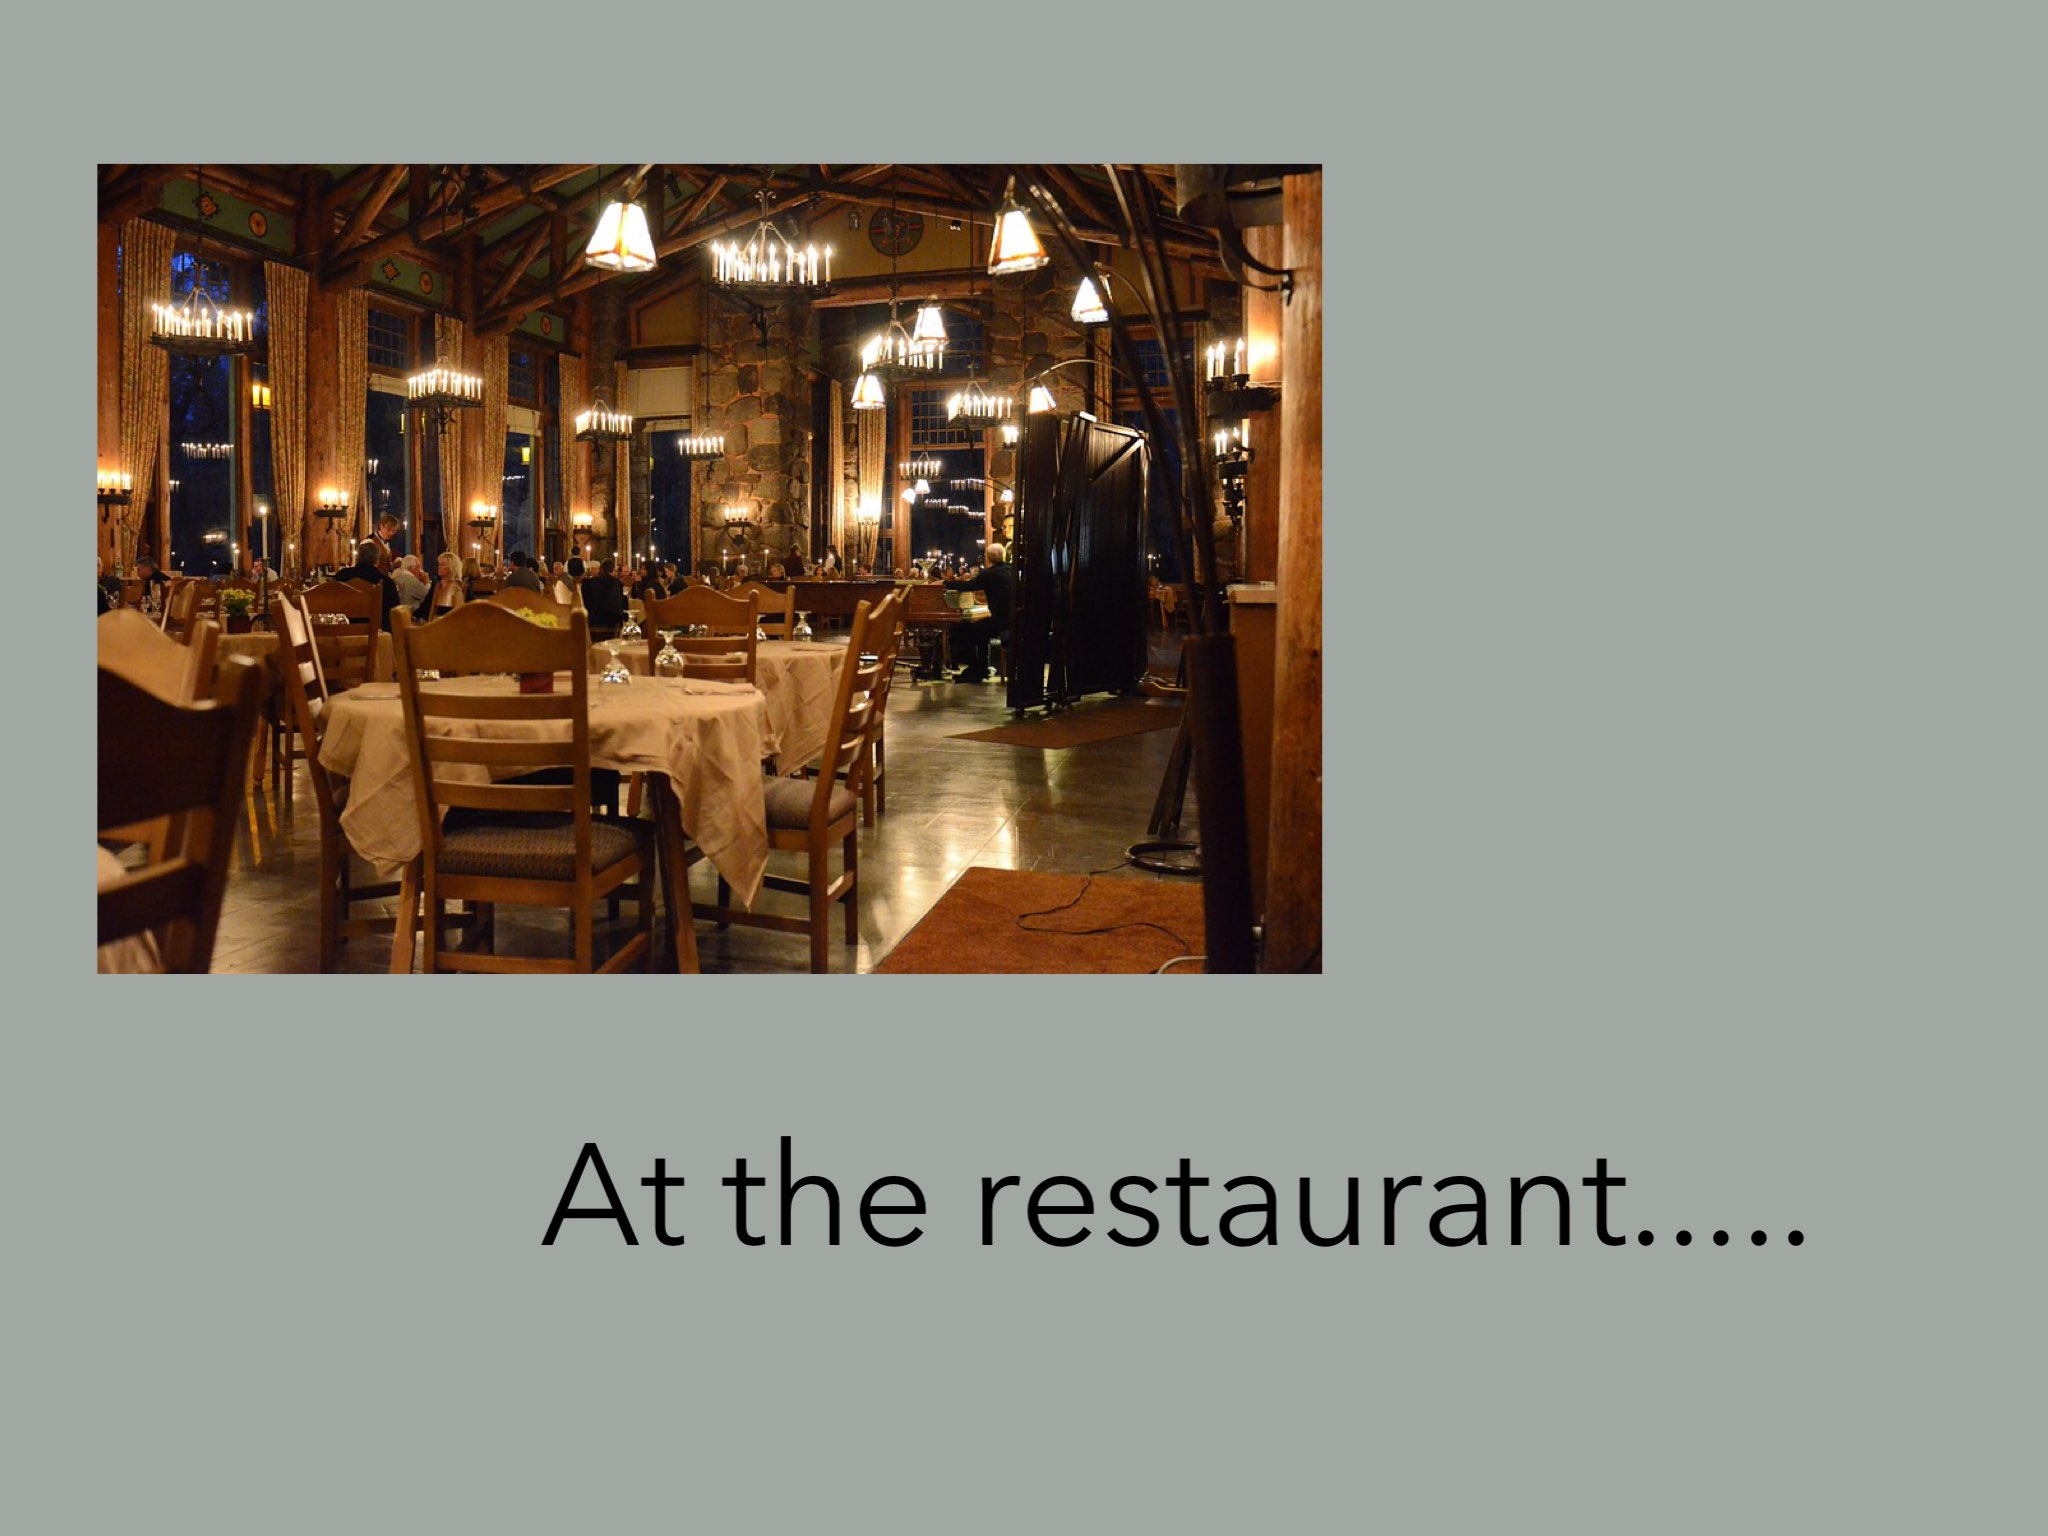 Restaurant Vocabulary by Carol Smith - Educational Games for